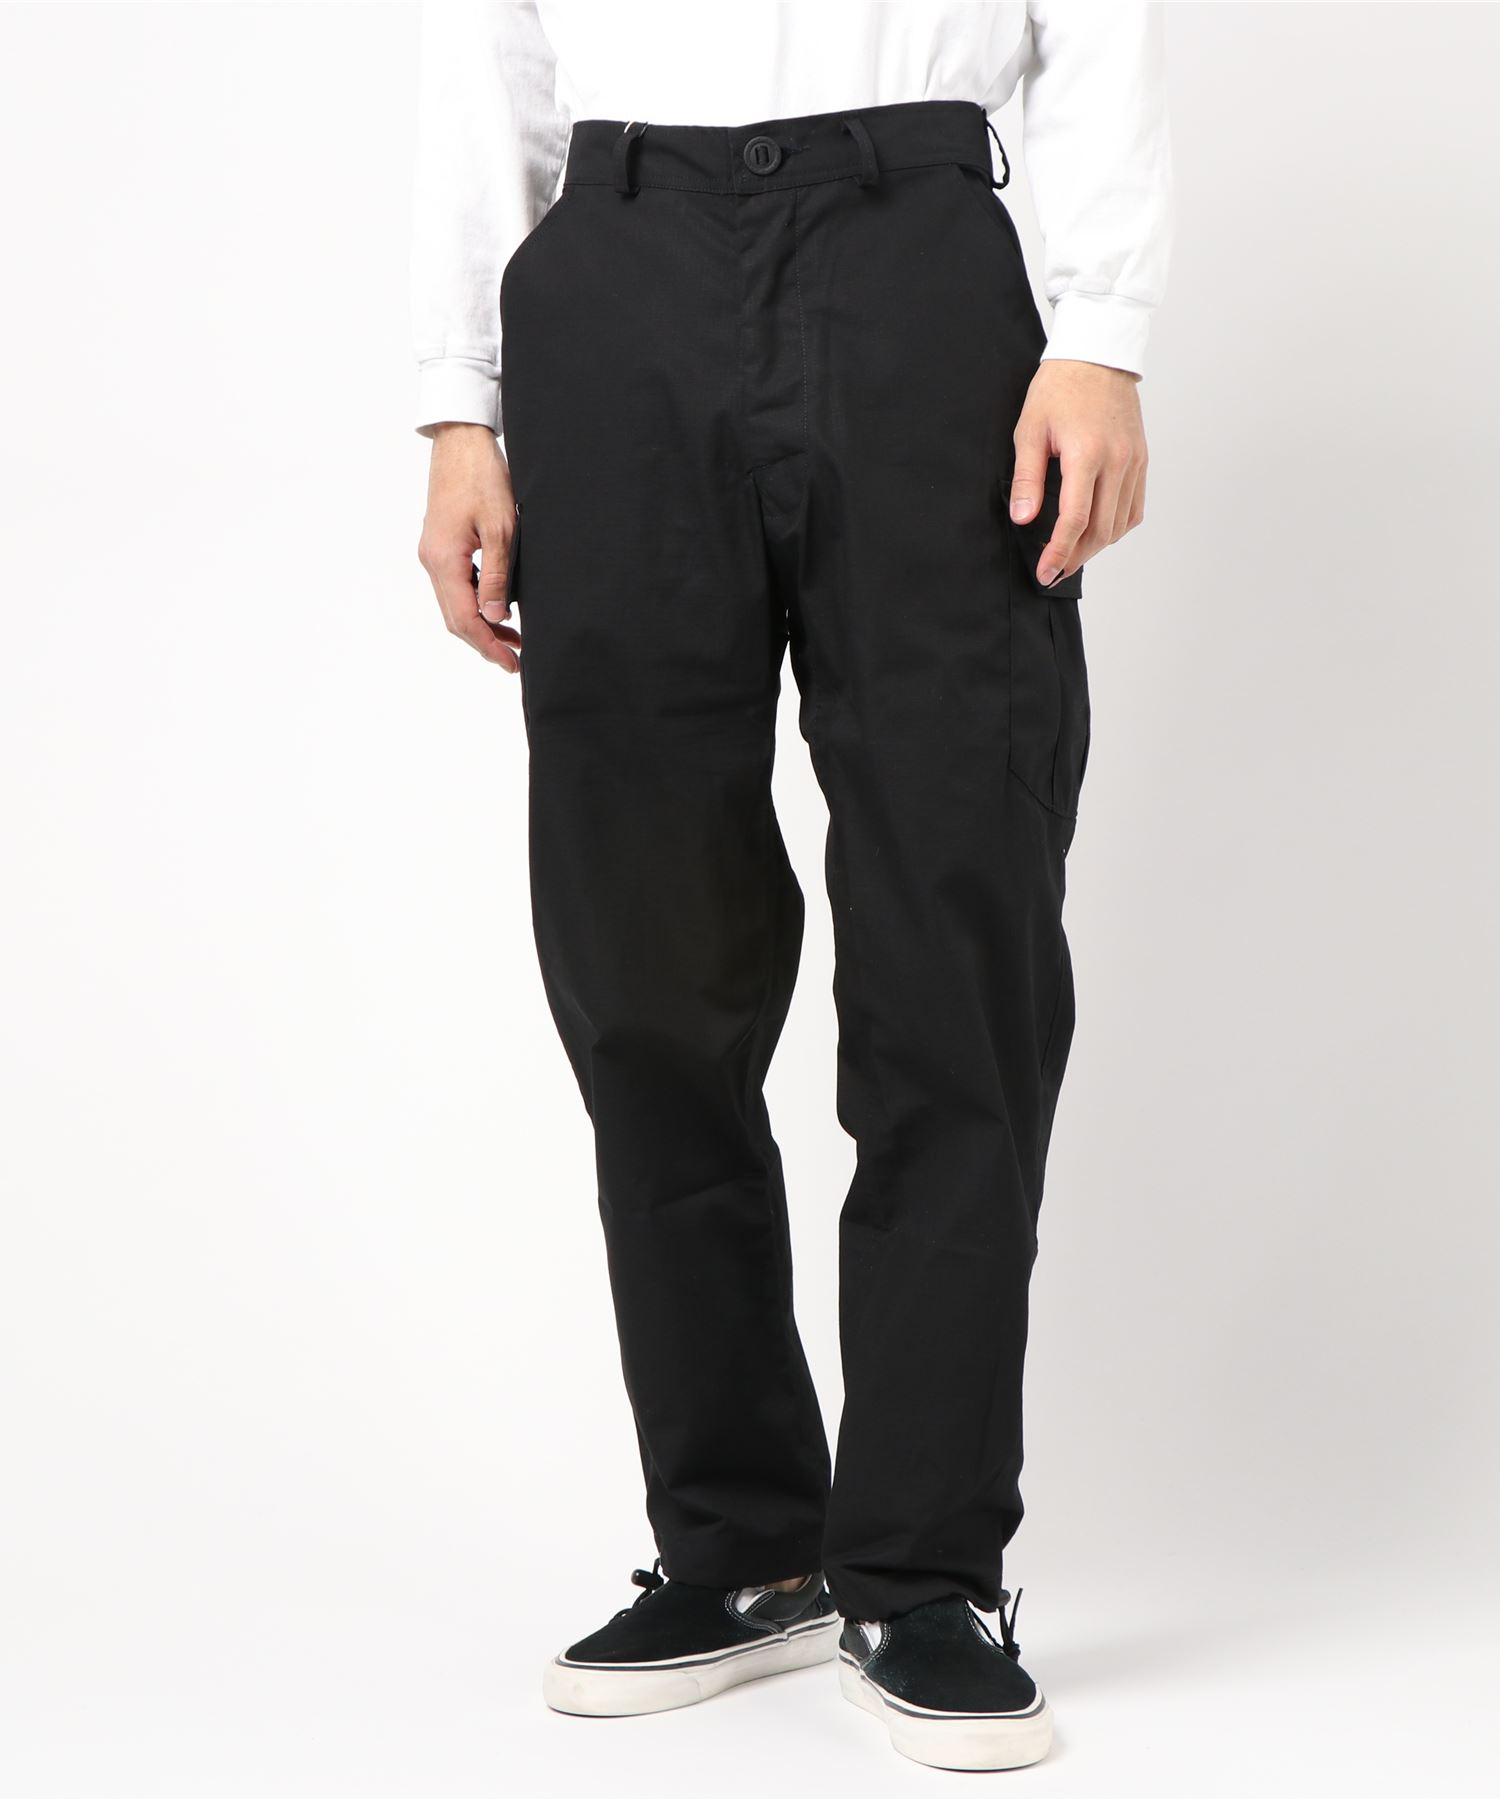 ArkAir×HYSTERIC COMBAT TROUSERS